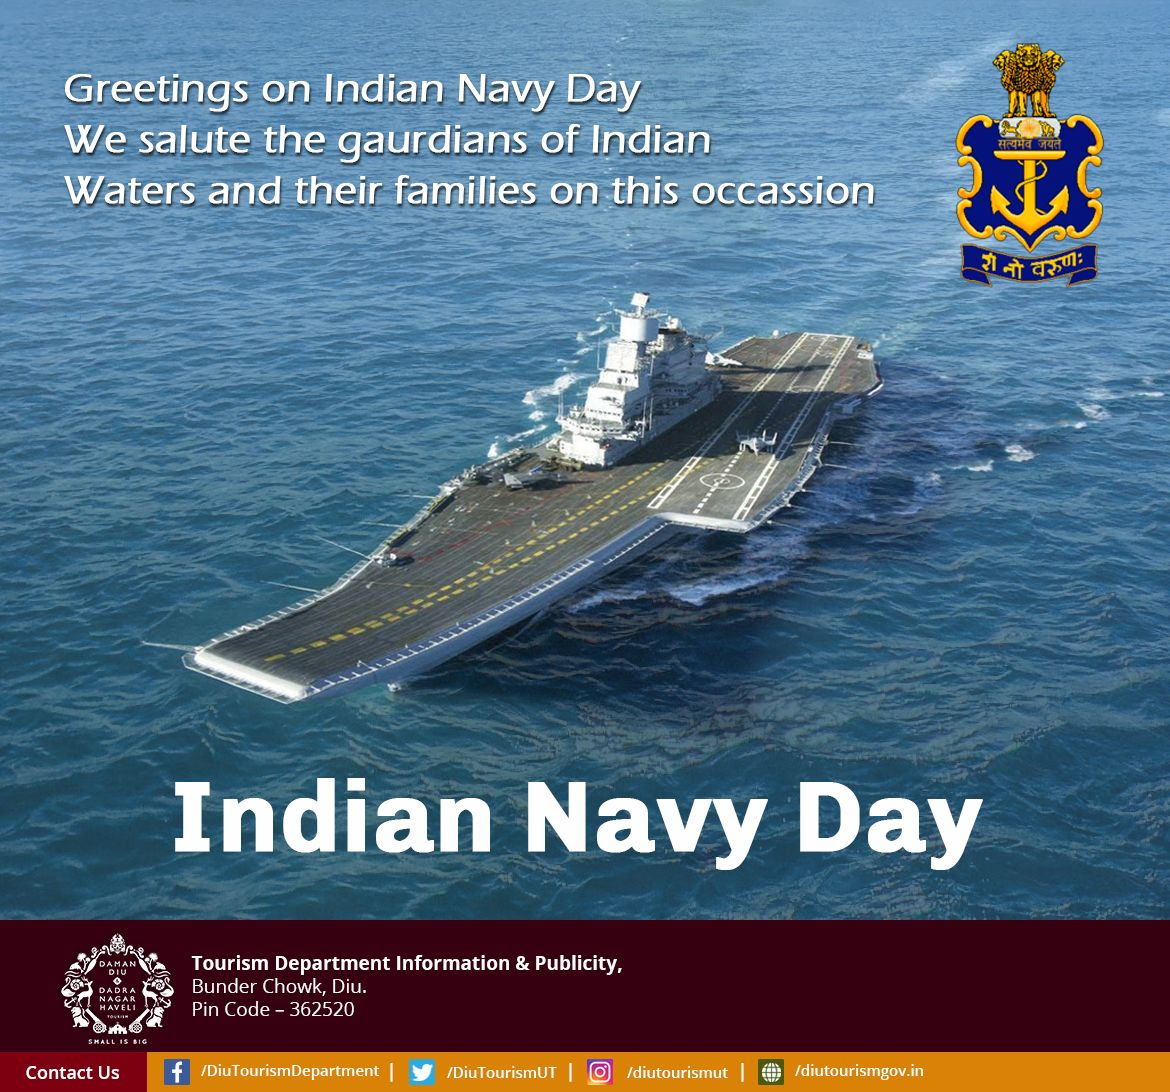 Indian Navy Day Navy Day Indian Navy Day Indian Navy